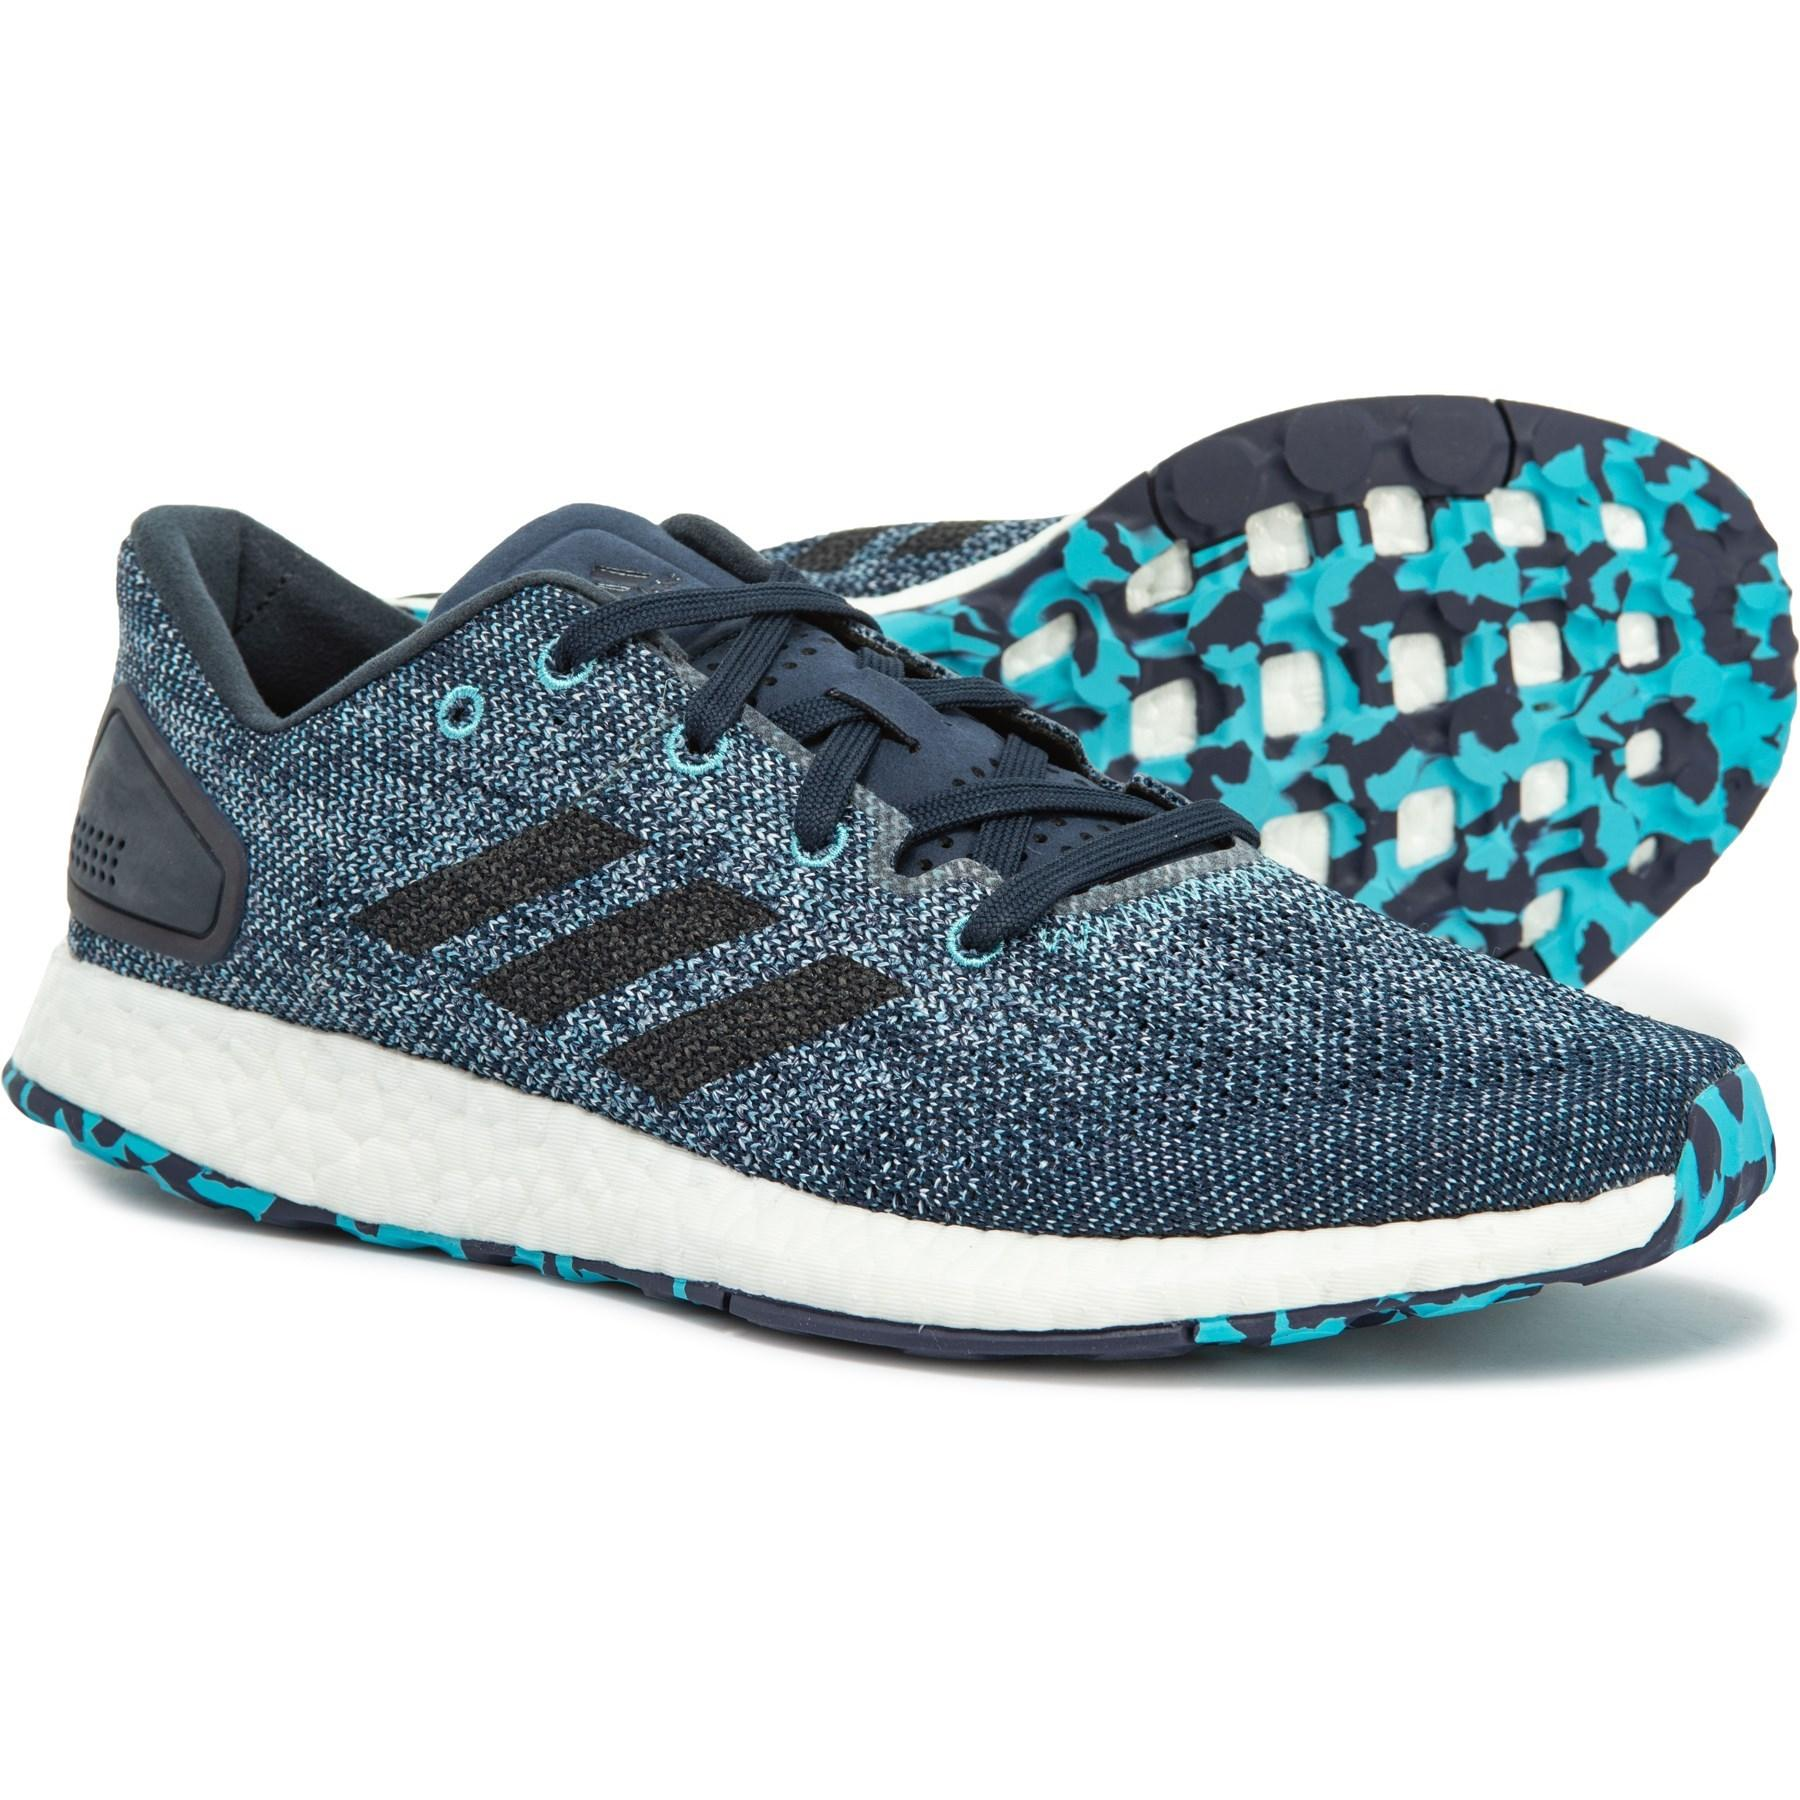 9a3a8ead298 Lyst - adidas Pureboost Dpr Ltd Running Shoes (for Men) in Blue for Men